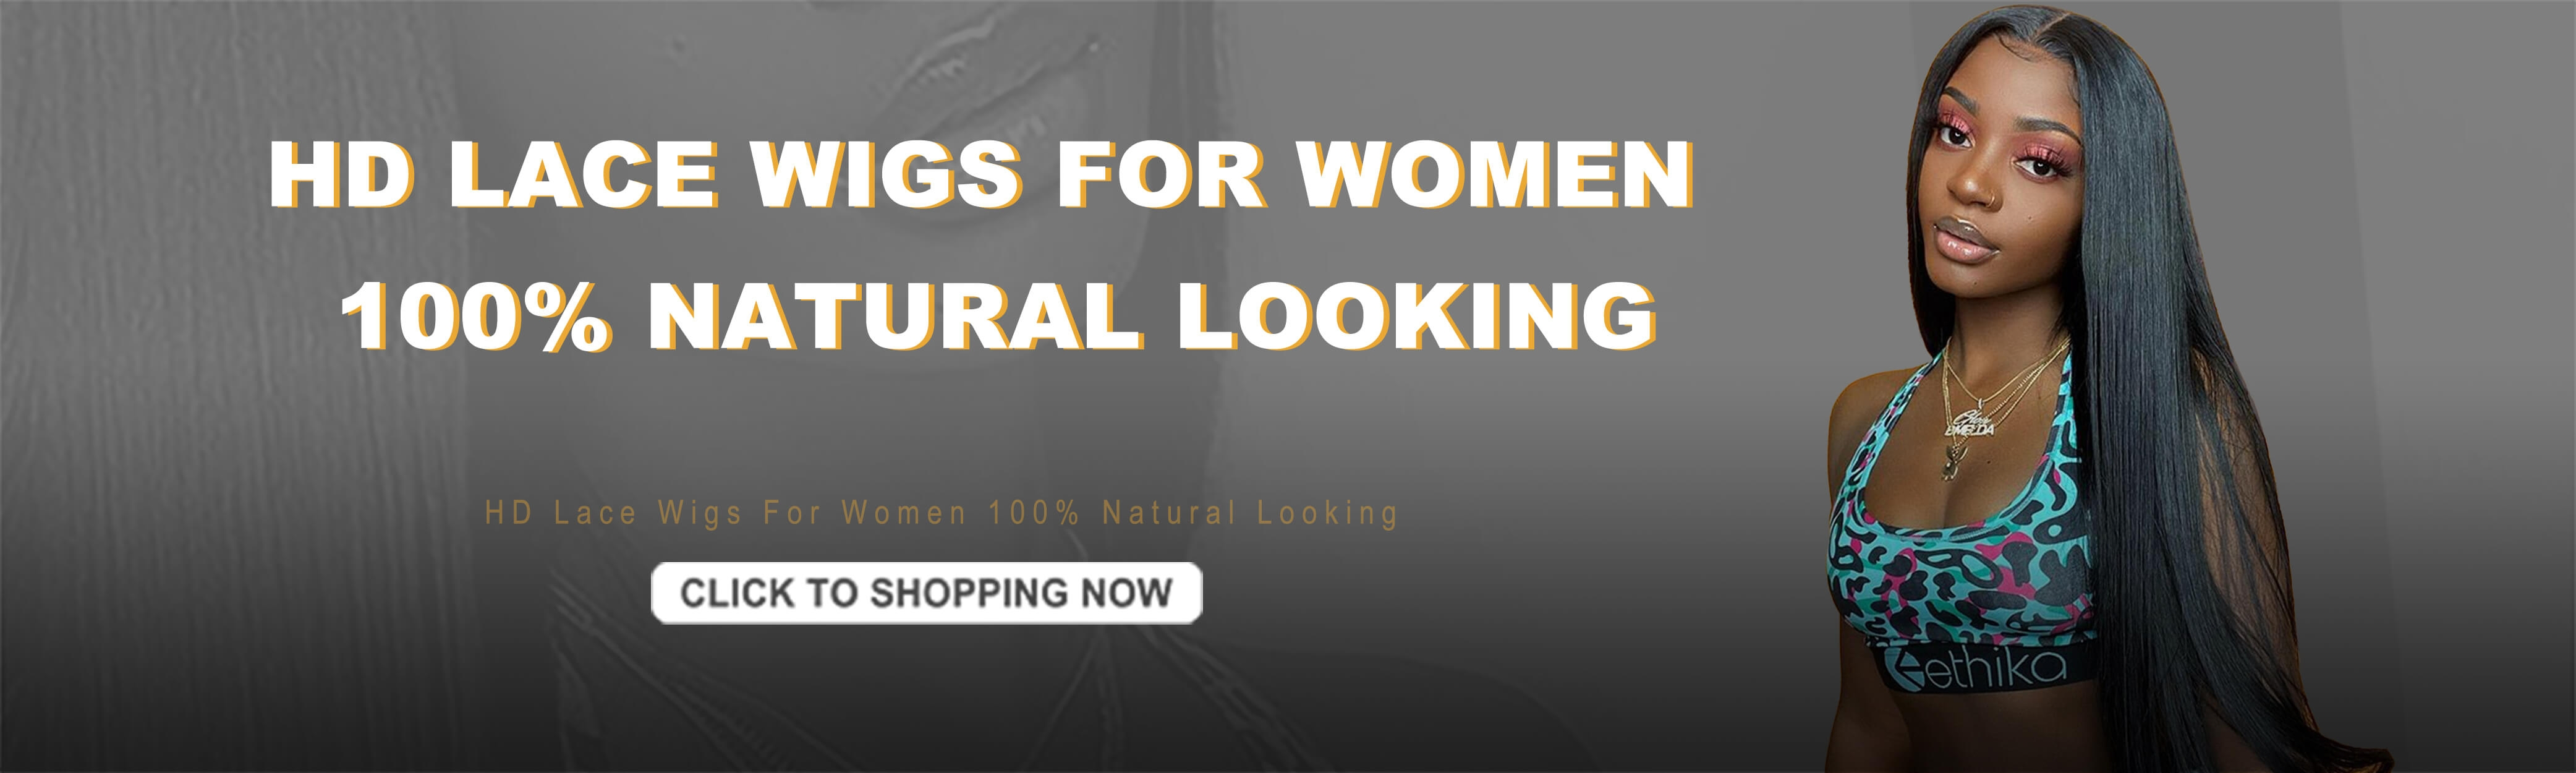 Normal HD Lace Wigs